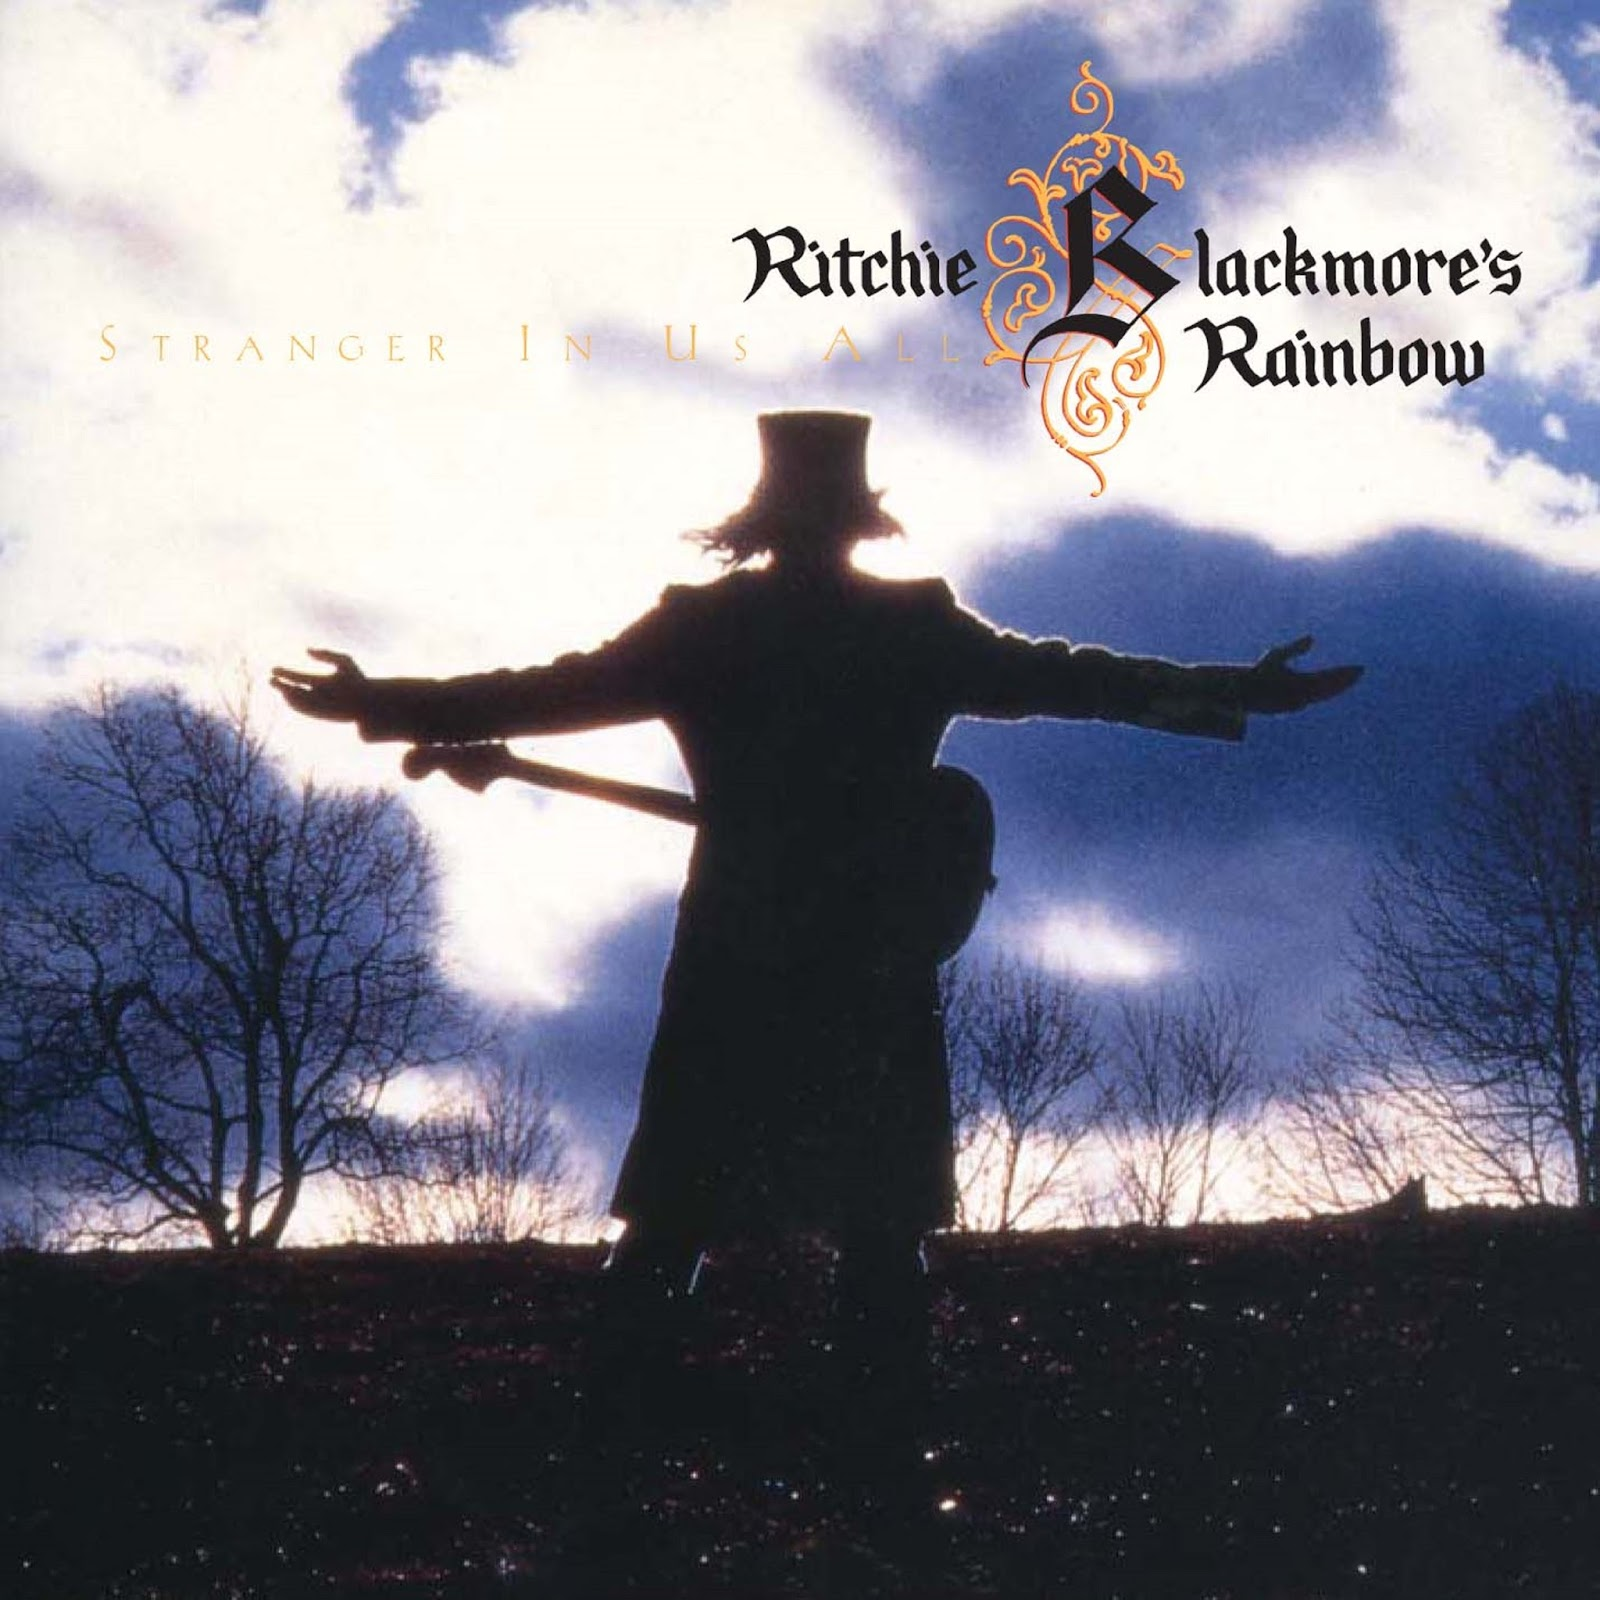 NIECHCIANY ALBUM RITCHIE'GO BLACKMORE'A, RAINBOW, STRANGER IN US ALL